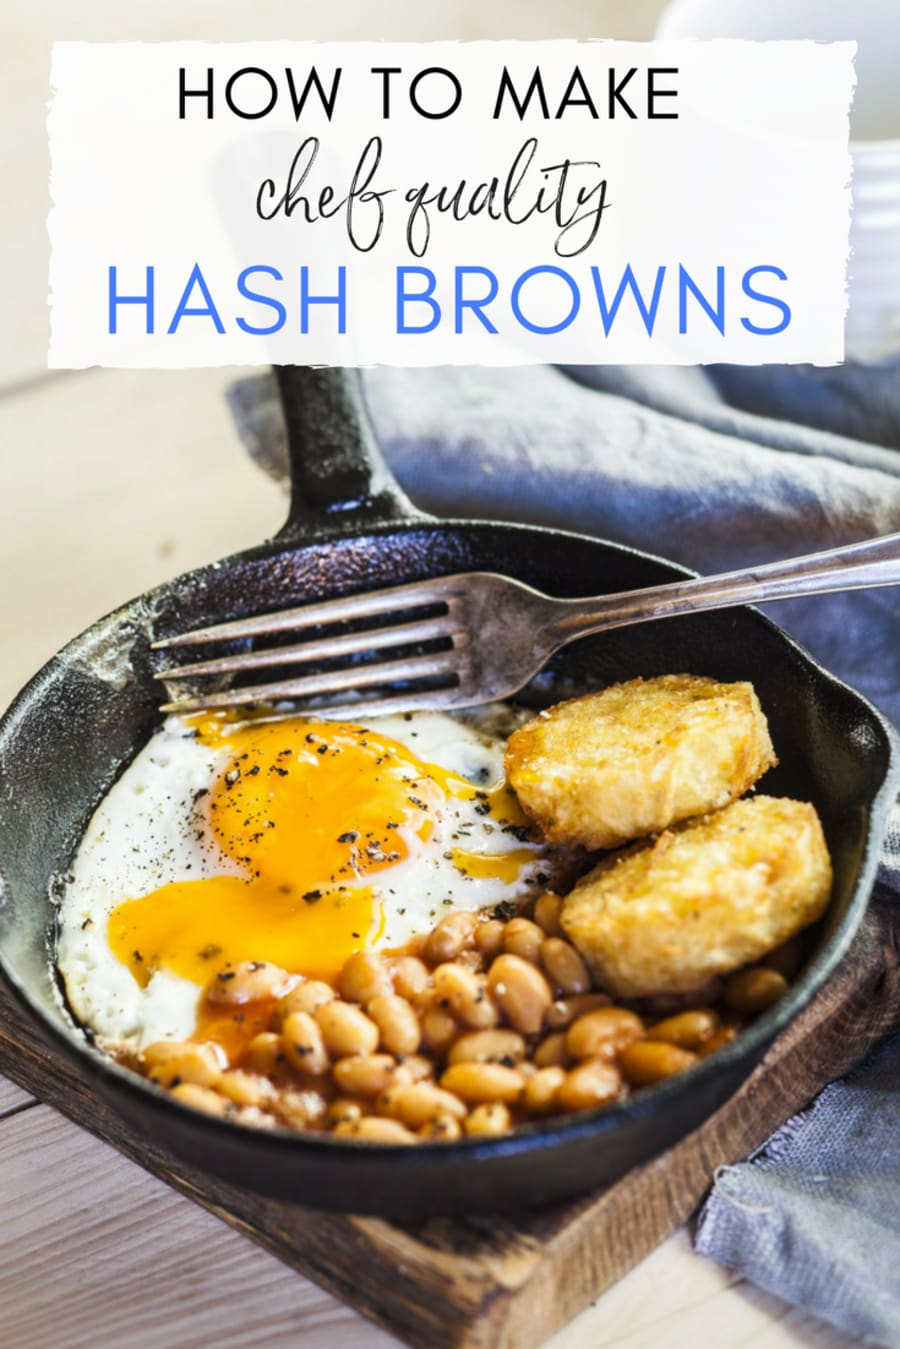 The Secrets To Making Chef-Quality Hash